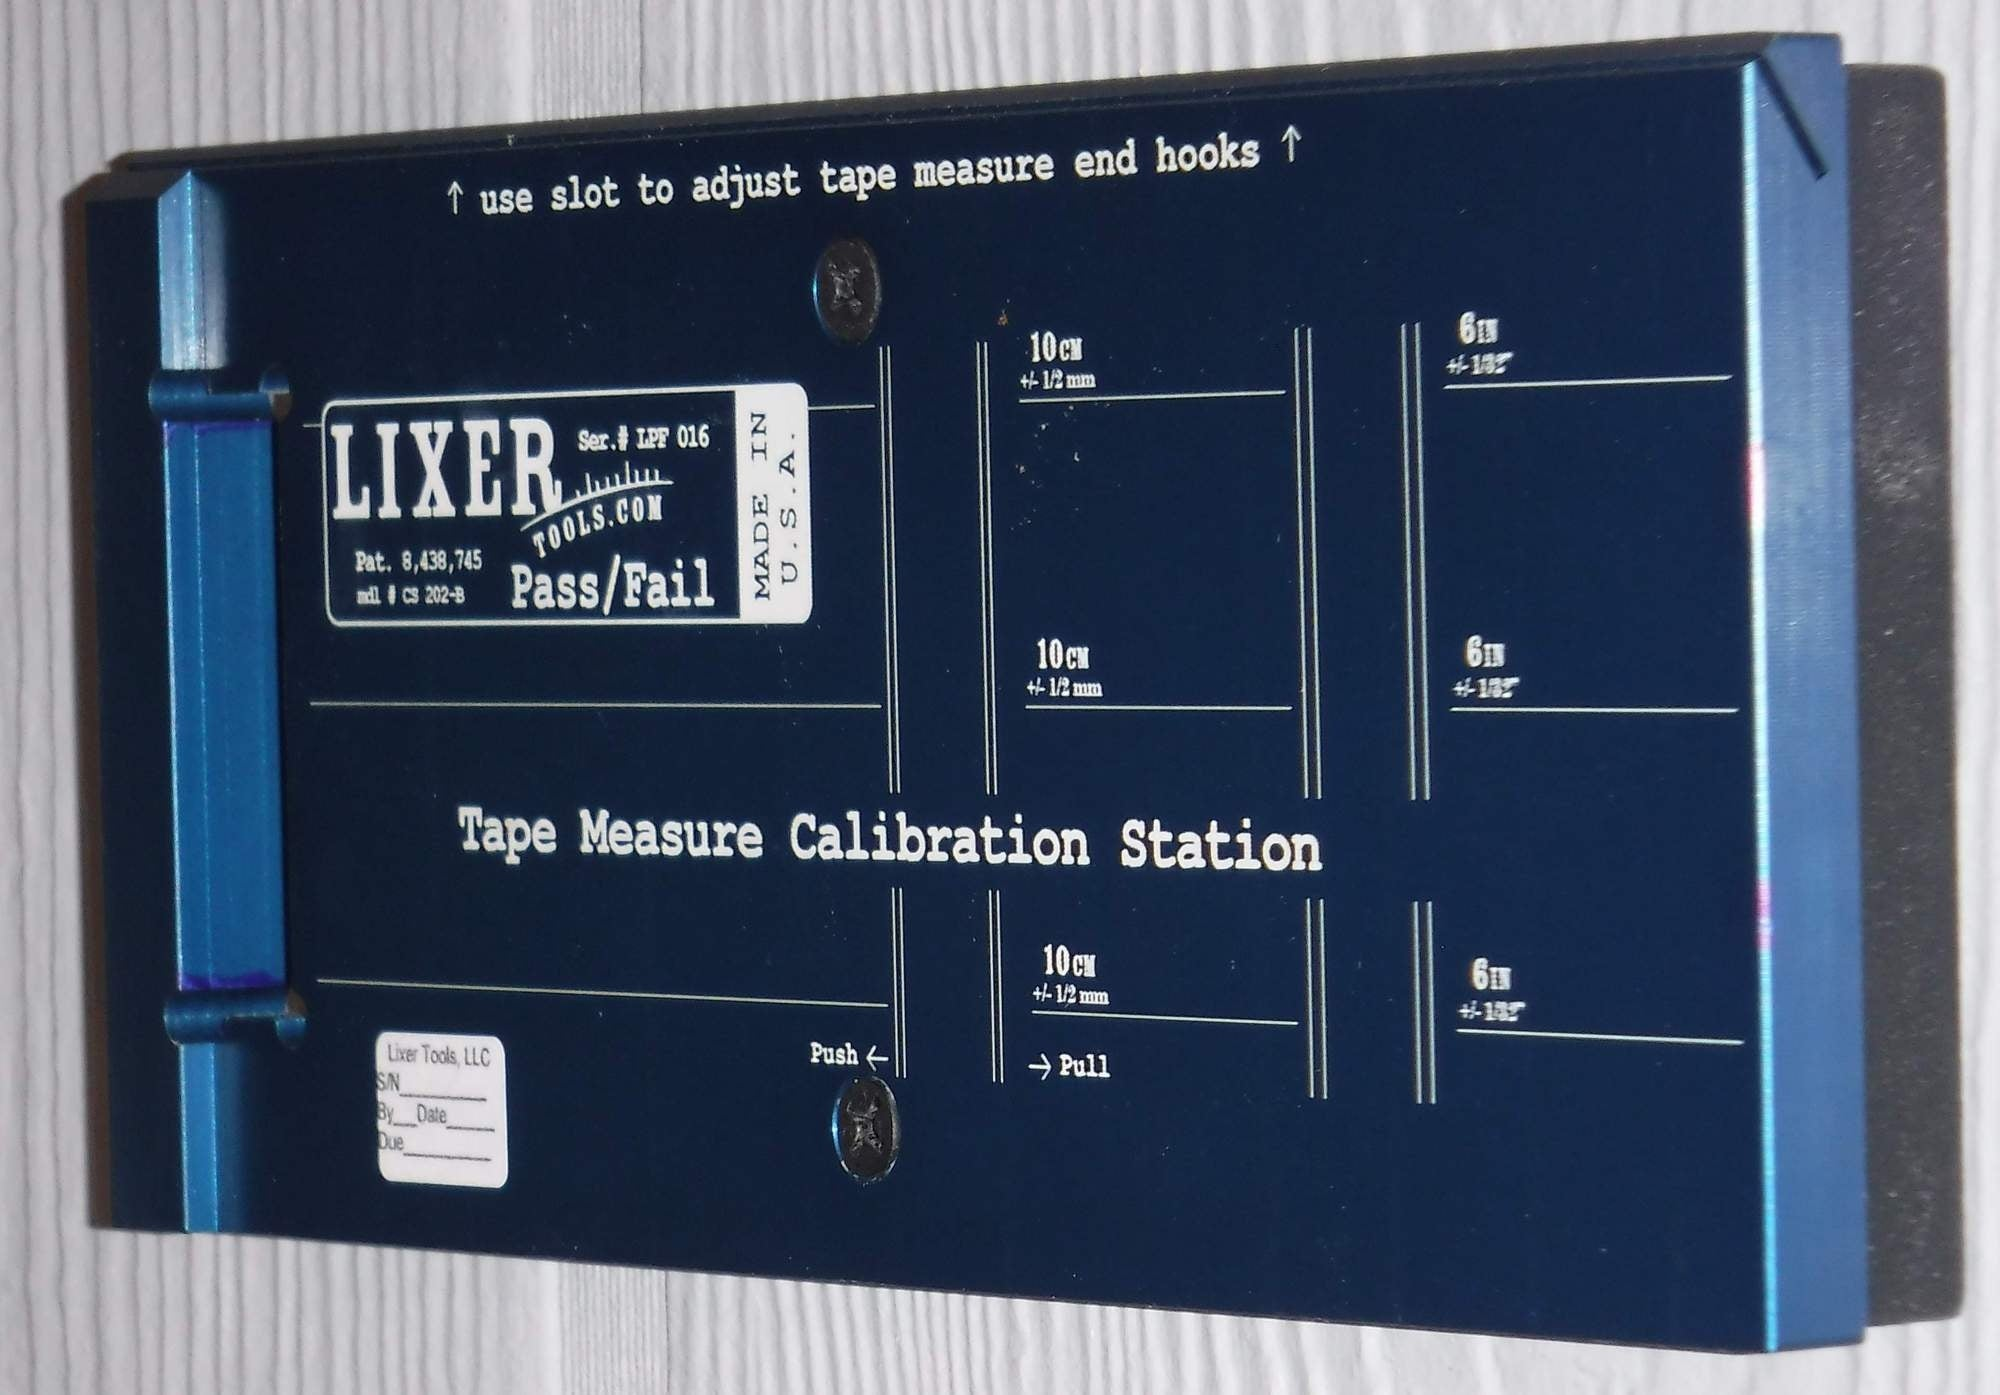 Lixer Pass/Fail Tape Measure Calibration Station